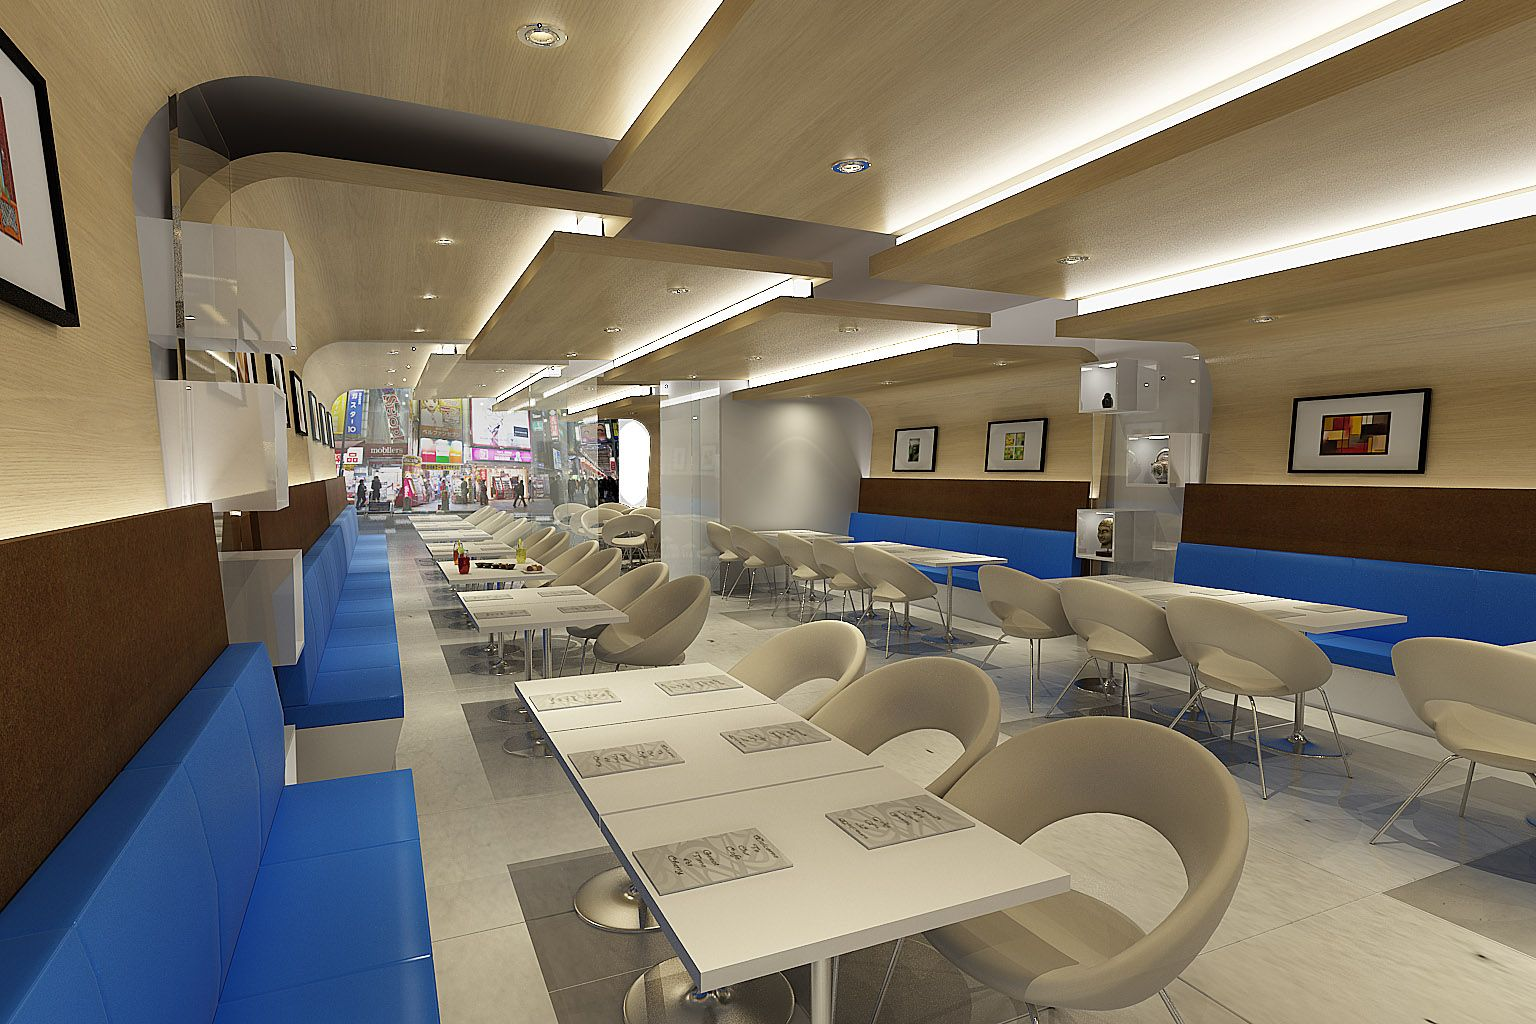 Interior design colleges near me ommercial interior design eilings and ommercial interiors on